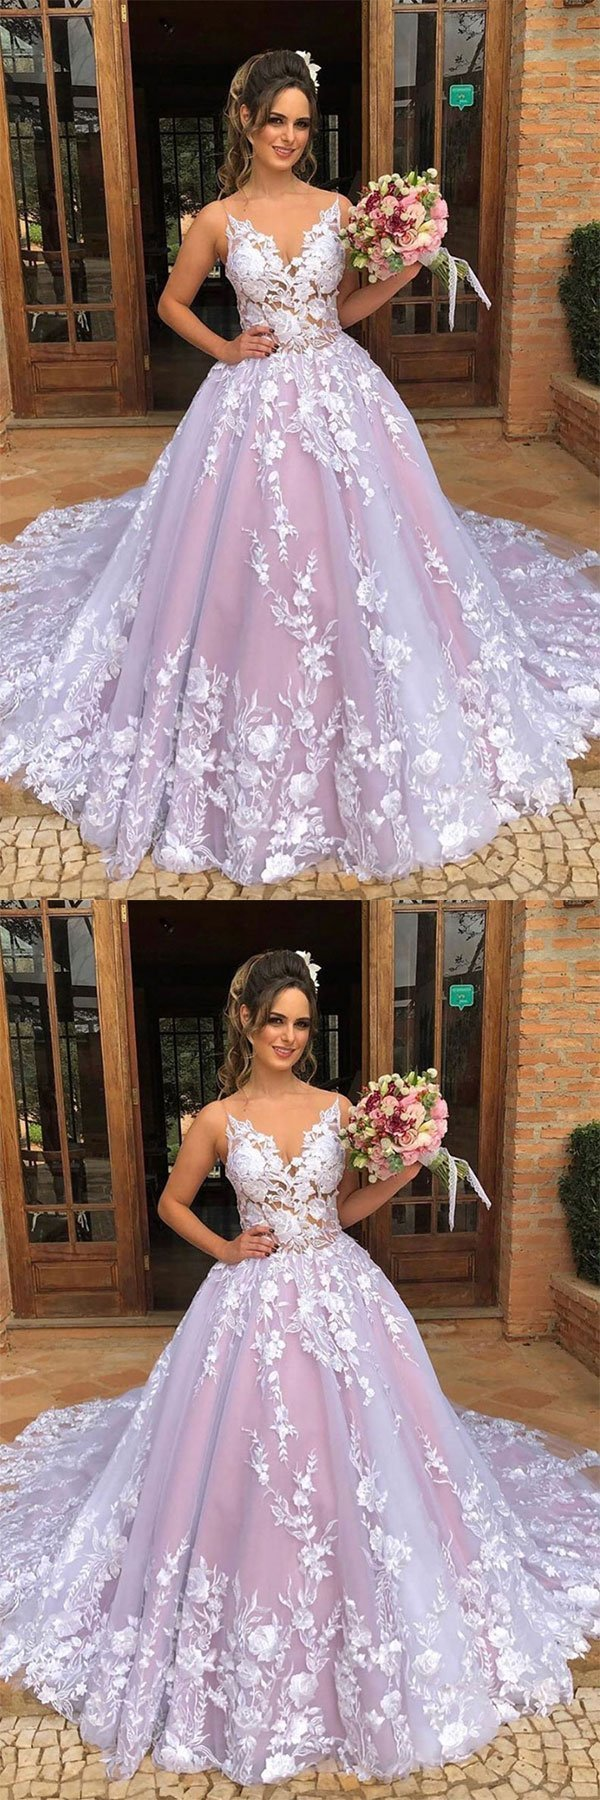 Pink Tulle Lace V Neck Long Lace Up Prom Gown, Sweet 16 Prom Dress